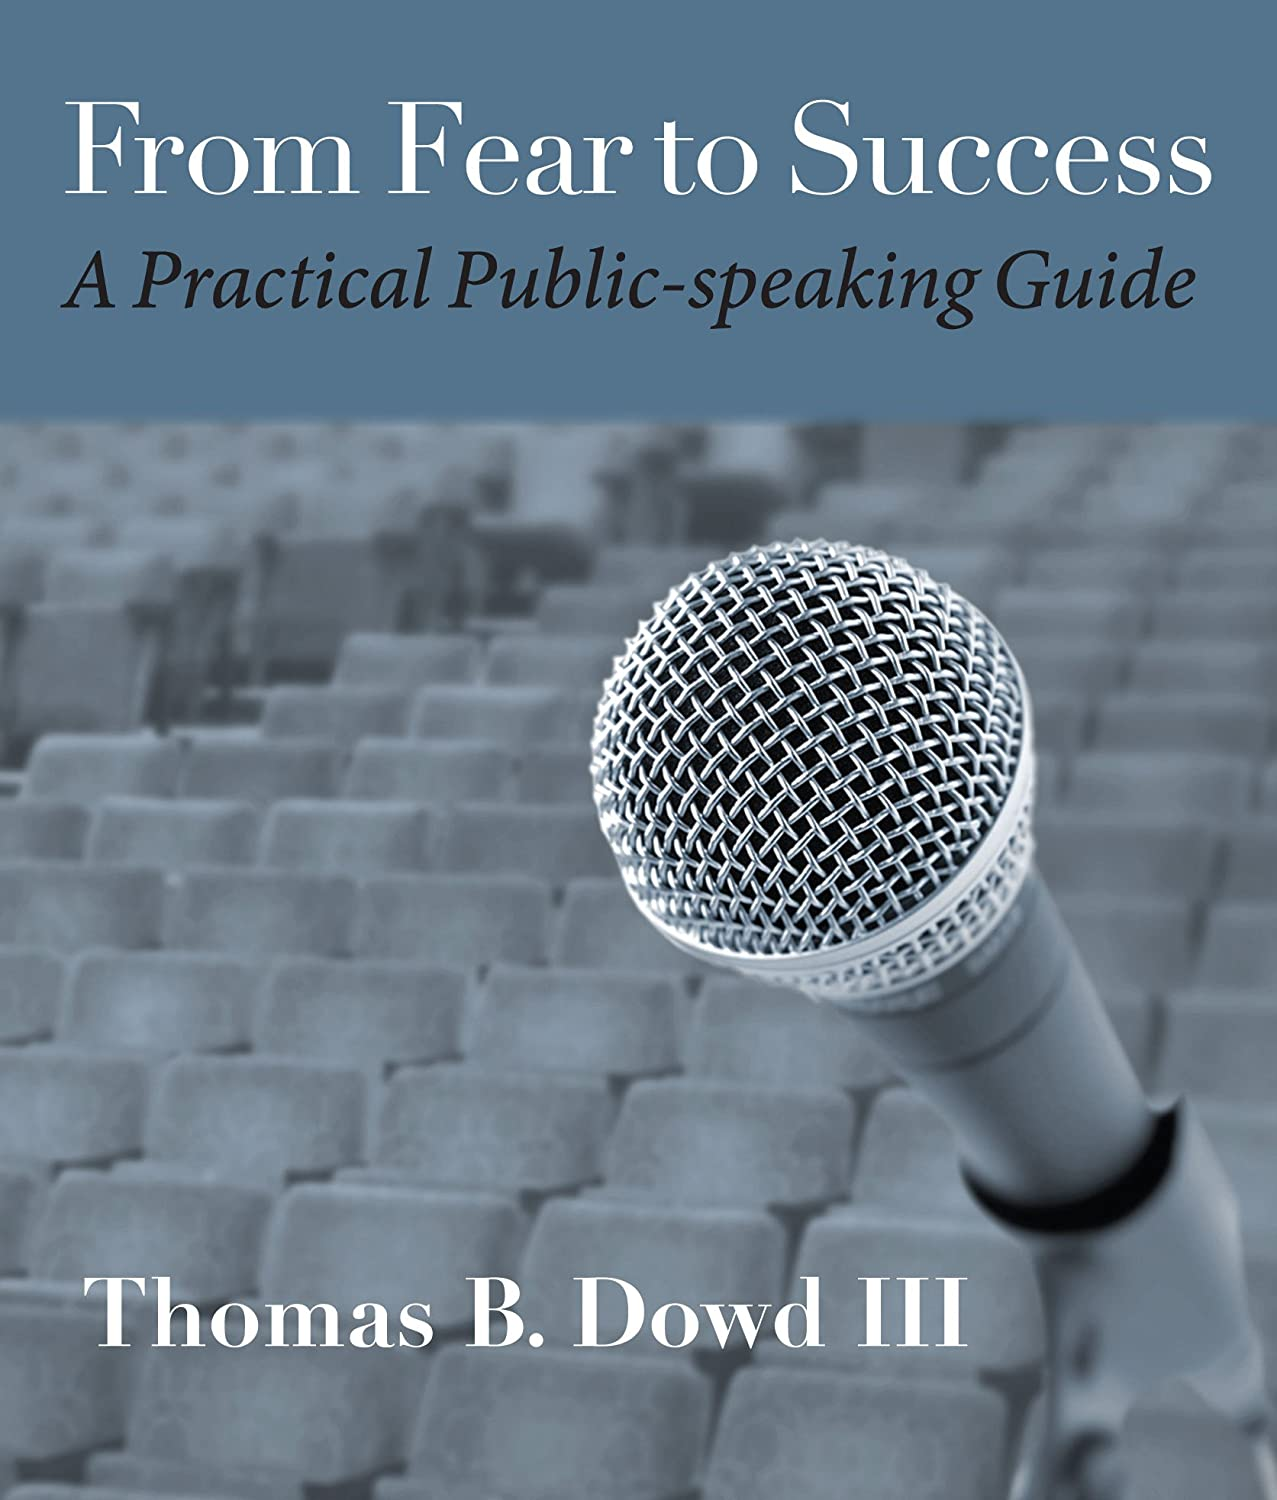 FearToSuccess_front-cover_final_ThomasBDowdIII